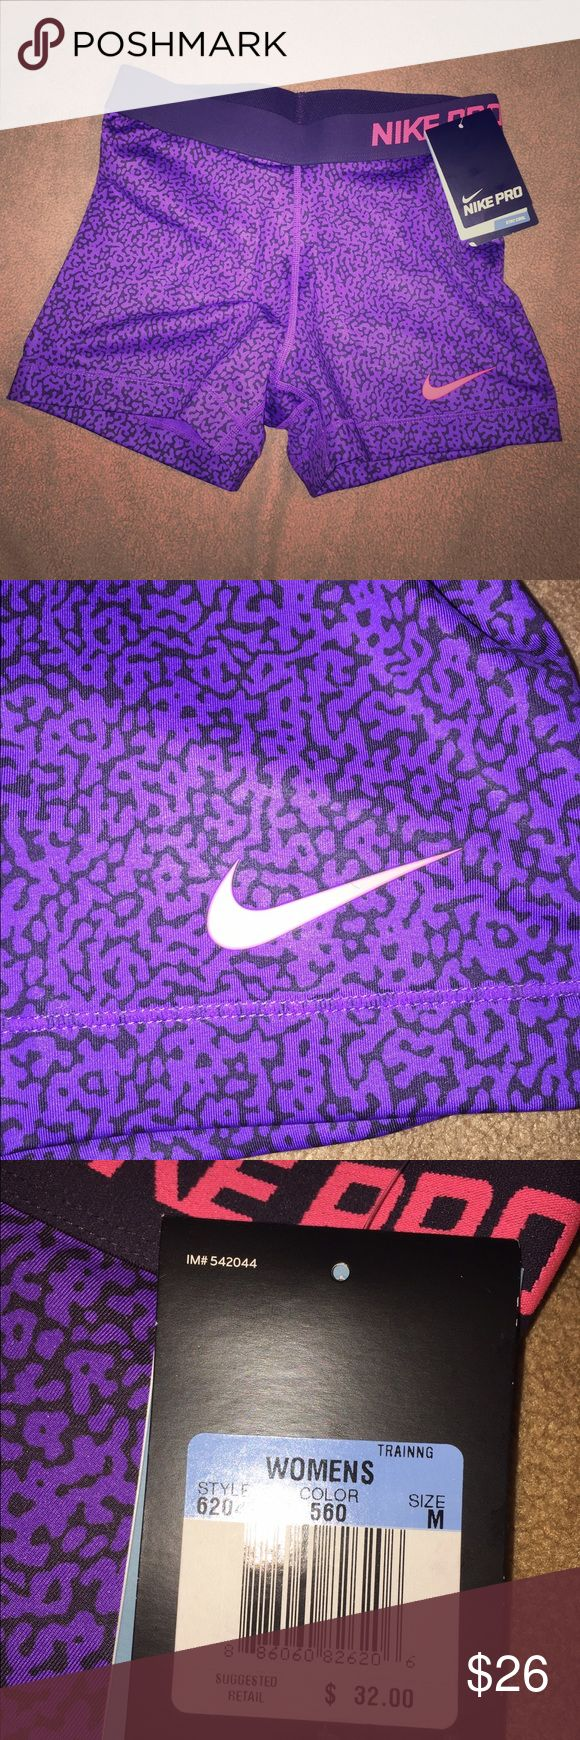 NWT new Nike Pro women's spandex shorts purple m BRAND NWT- Nike Pro women's spandex size medium. Retails for $32, price firm when bought alone. Bundle for a better deal :) Nike Shorts